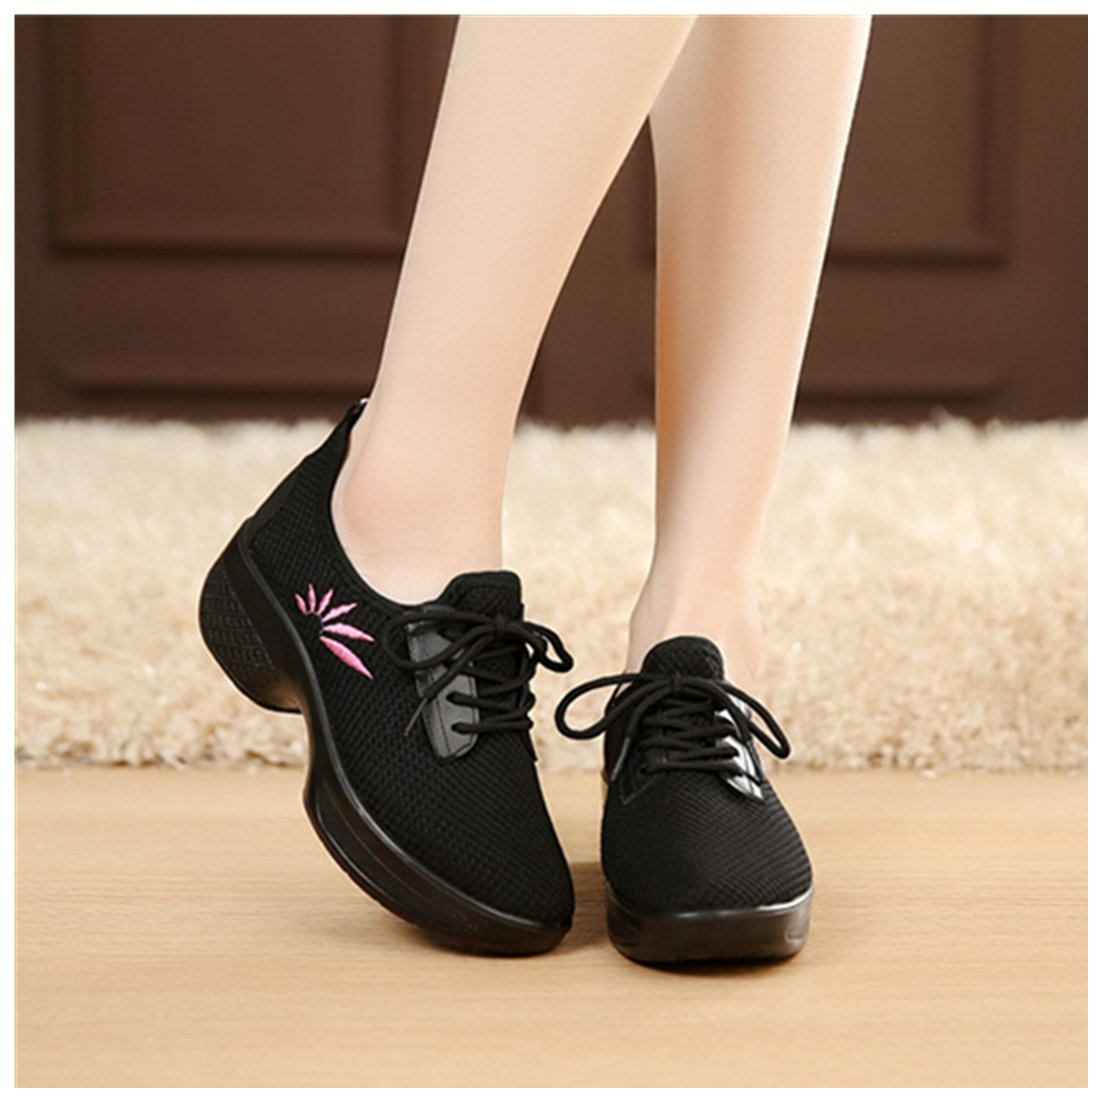 vermers Clearance Women Casual Sport Shoes - Fashion Walking Flats Increasing Mesh Embroidery Wedges Shoes(US:7, Black)